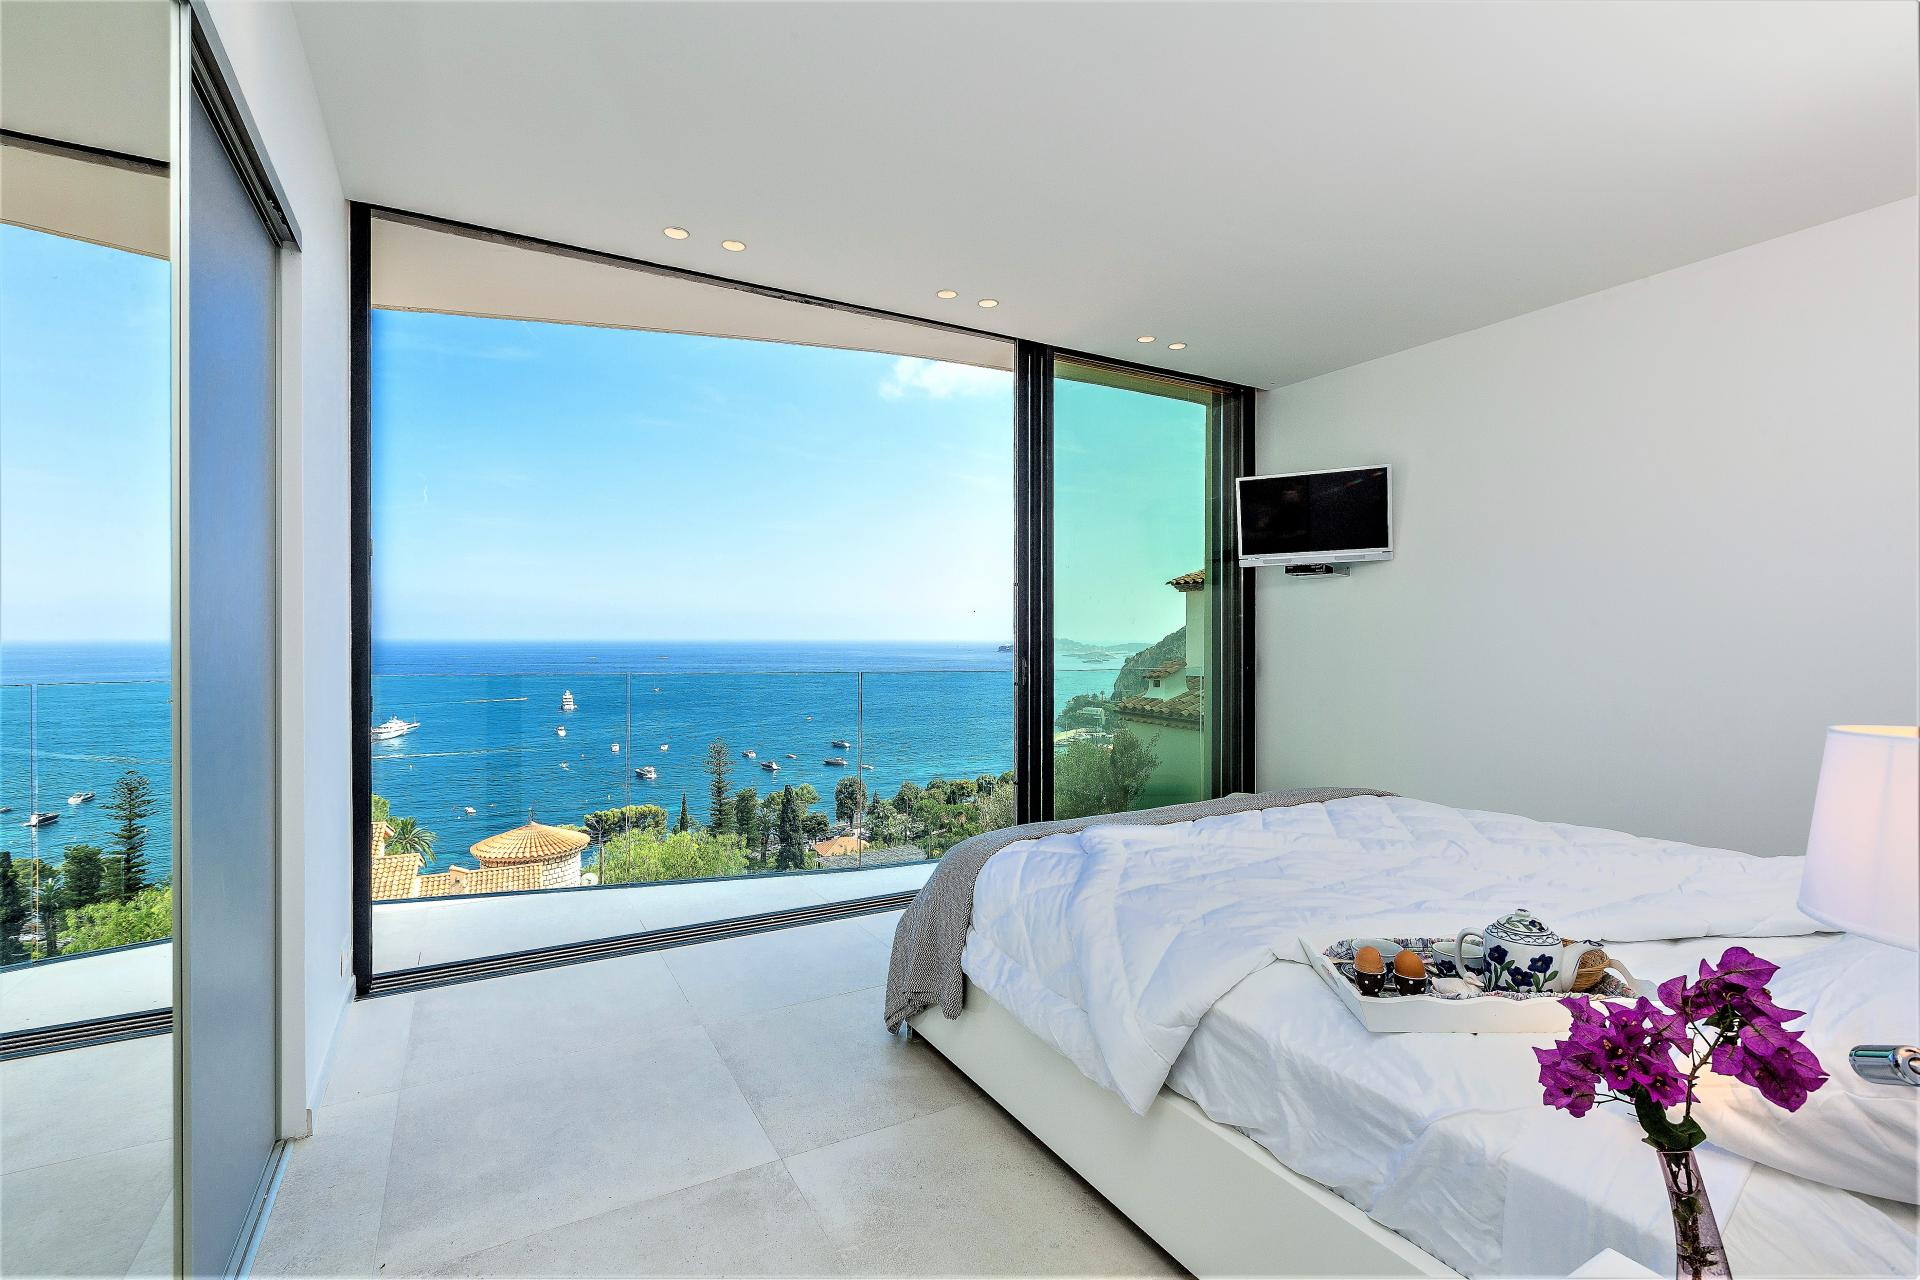 VILLA INFINITY WITH SPECTACULAR VIEWS FROM THE BEDROOM FOR AN IDEAL HOLIDAY IN EZE COTE D AZUR